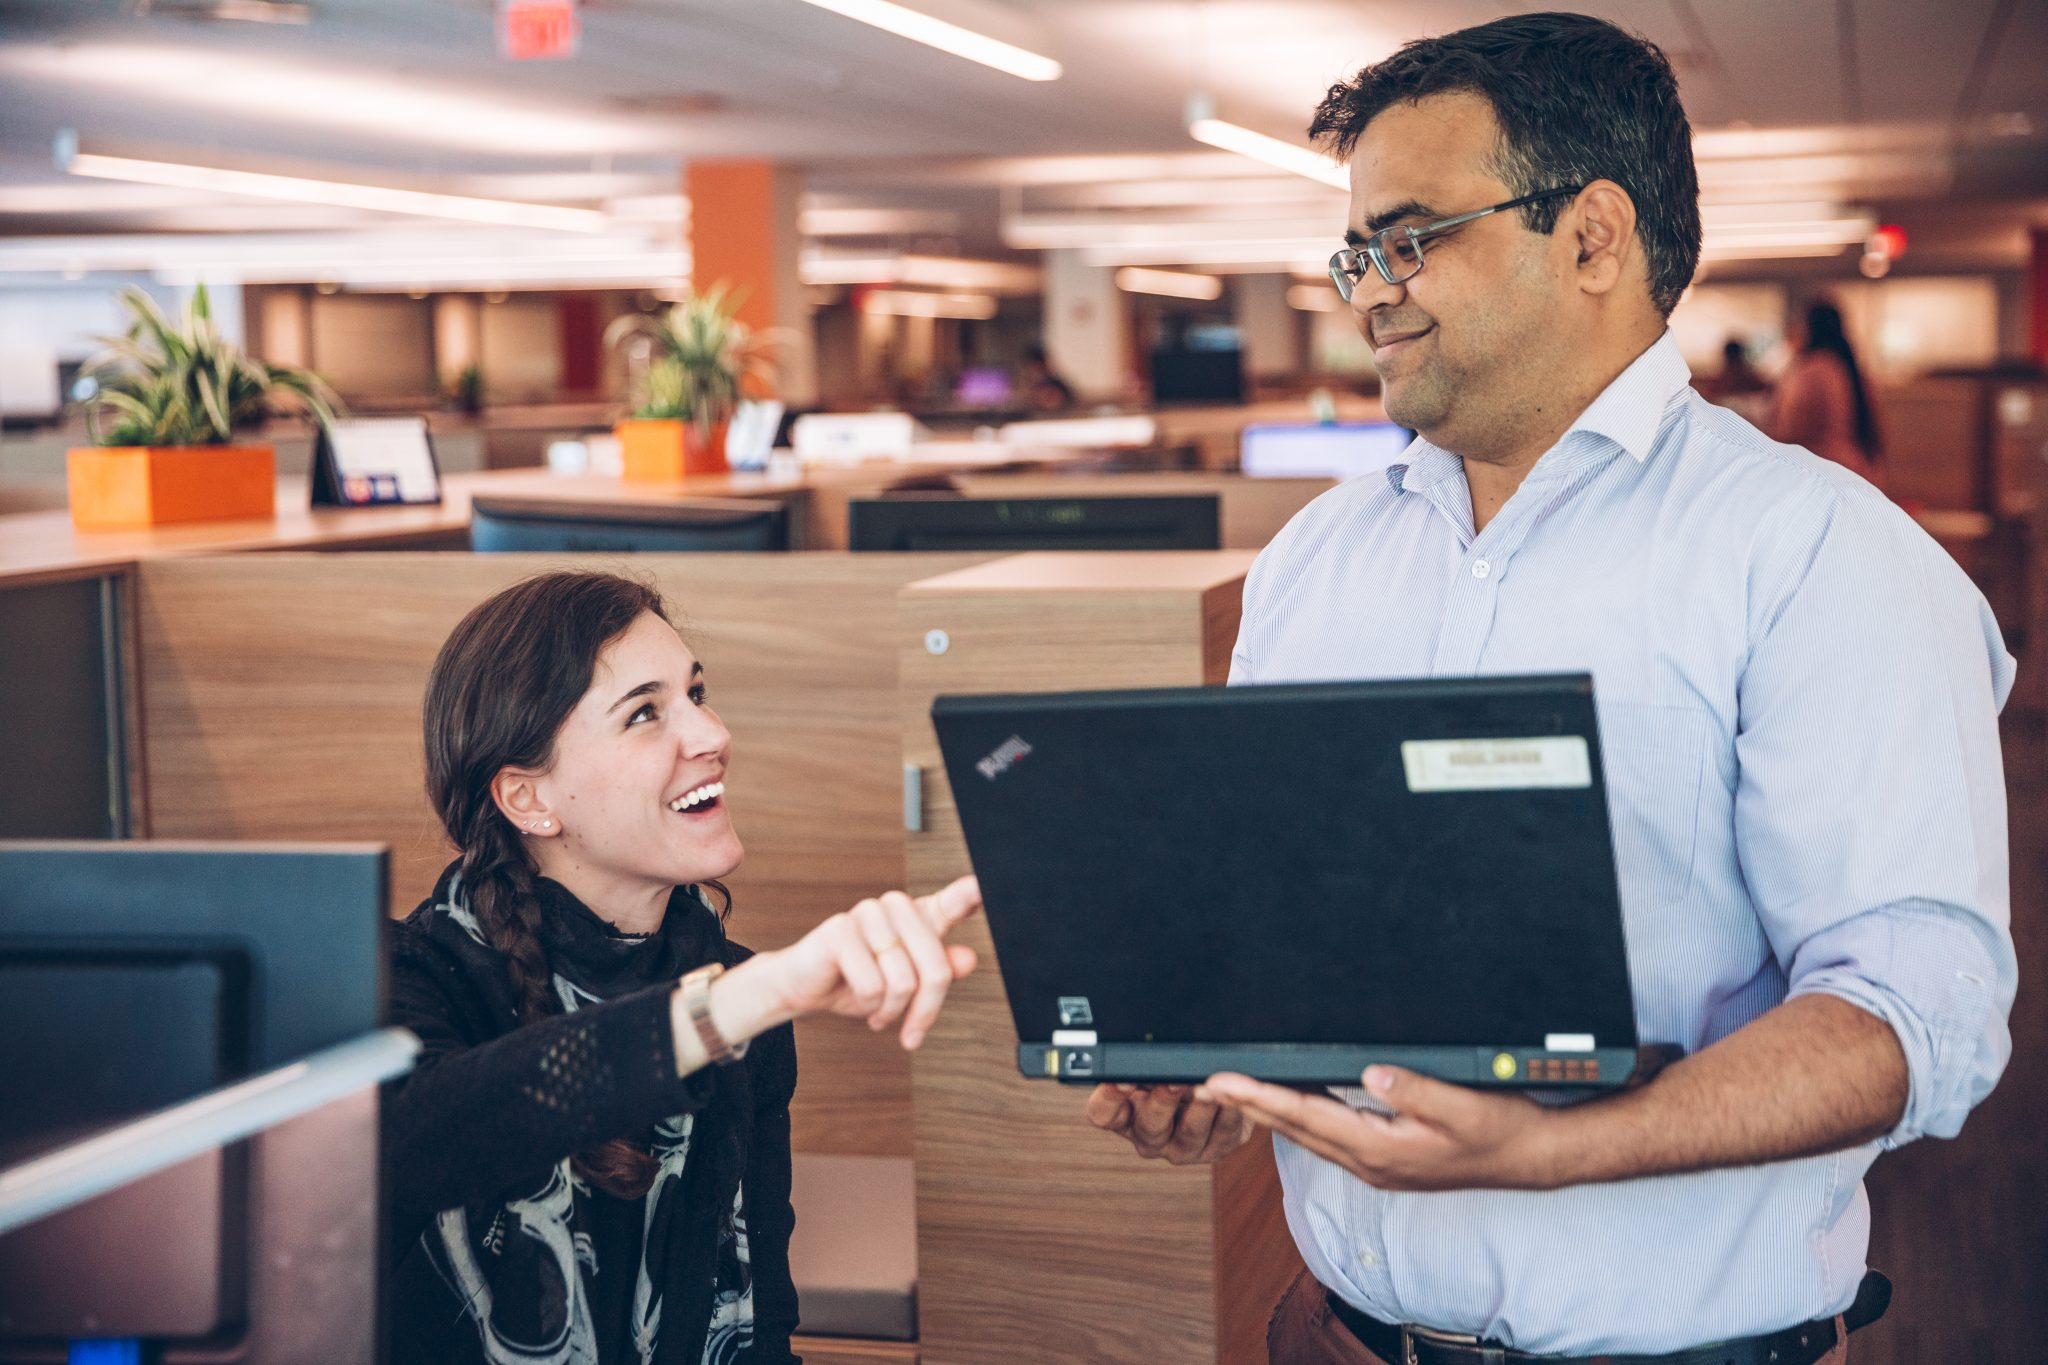 Coworkers, a seated woman and a standing man, in cheerful discussion